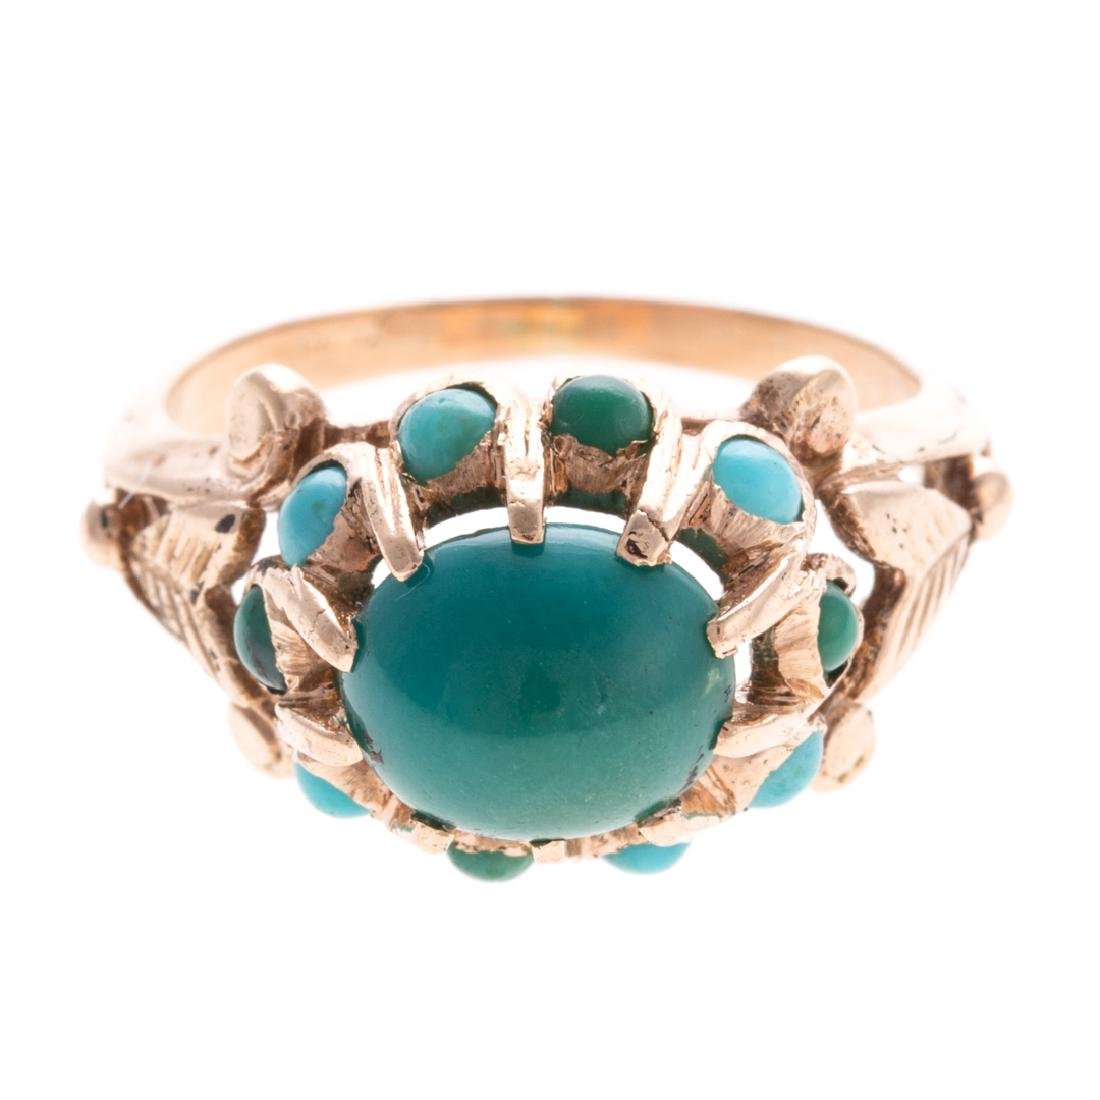 A Lady's Turquoise Ring in 14K Gold